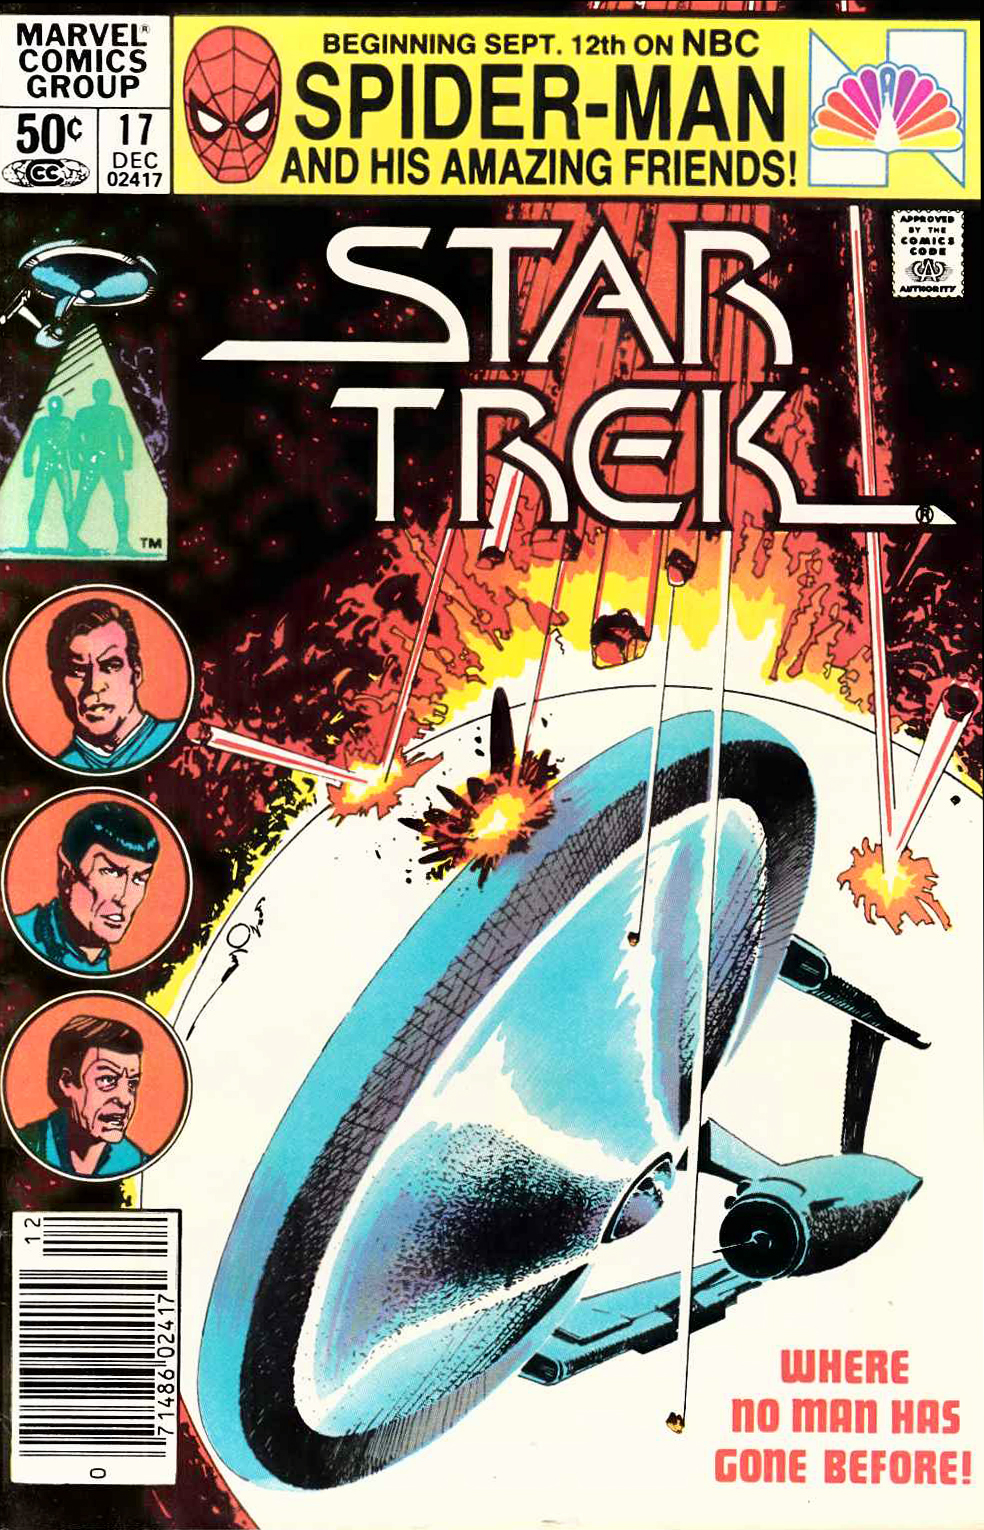 File:Marvel 17.jpg